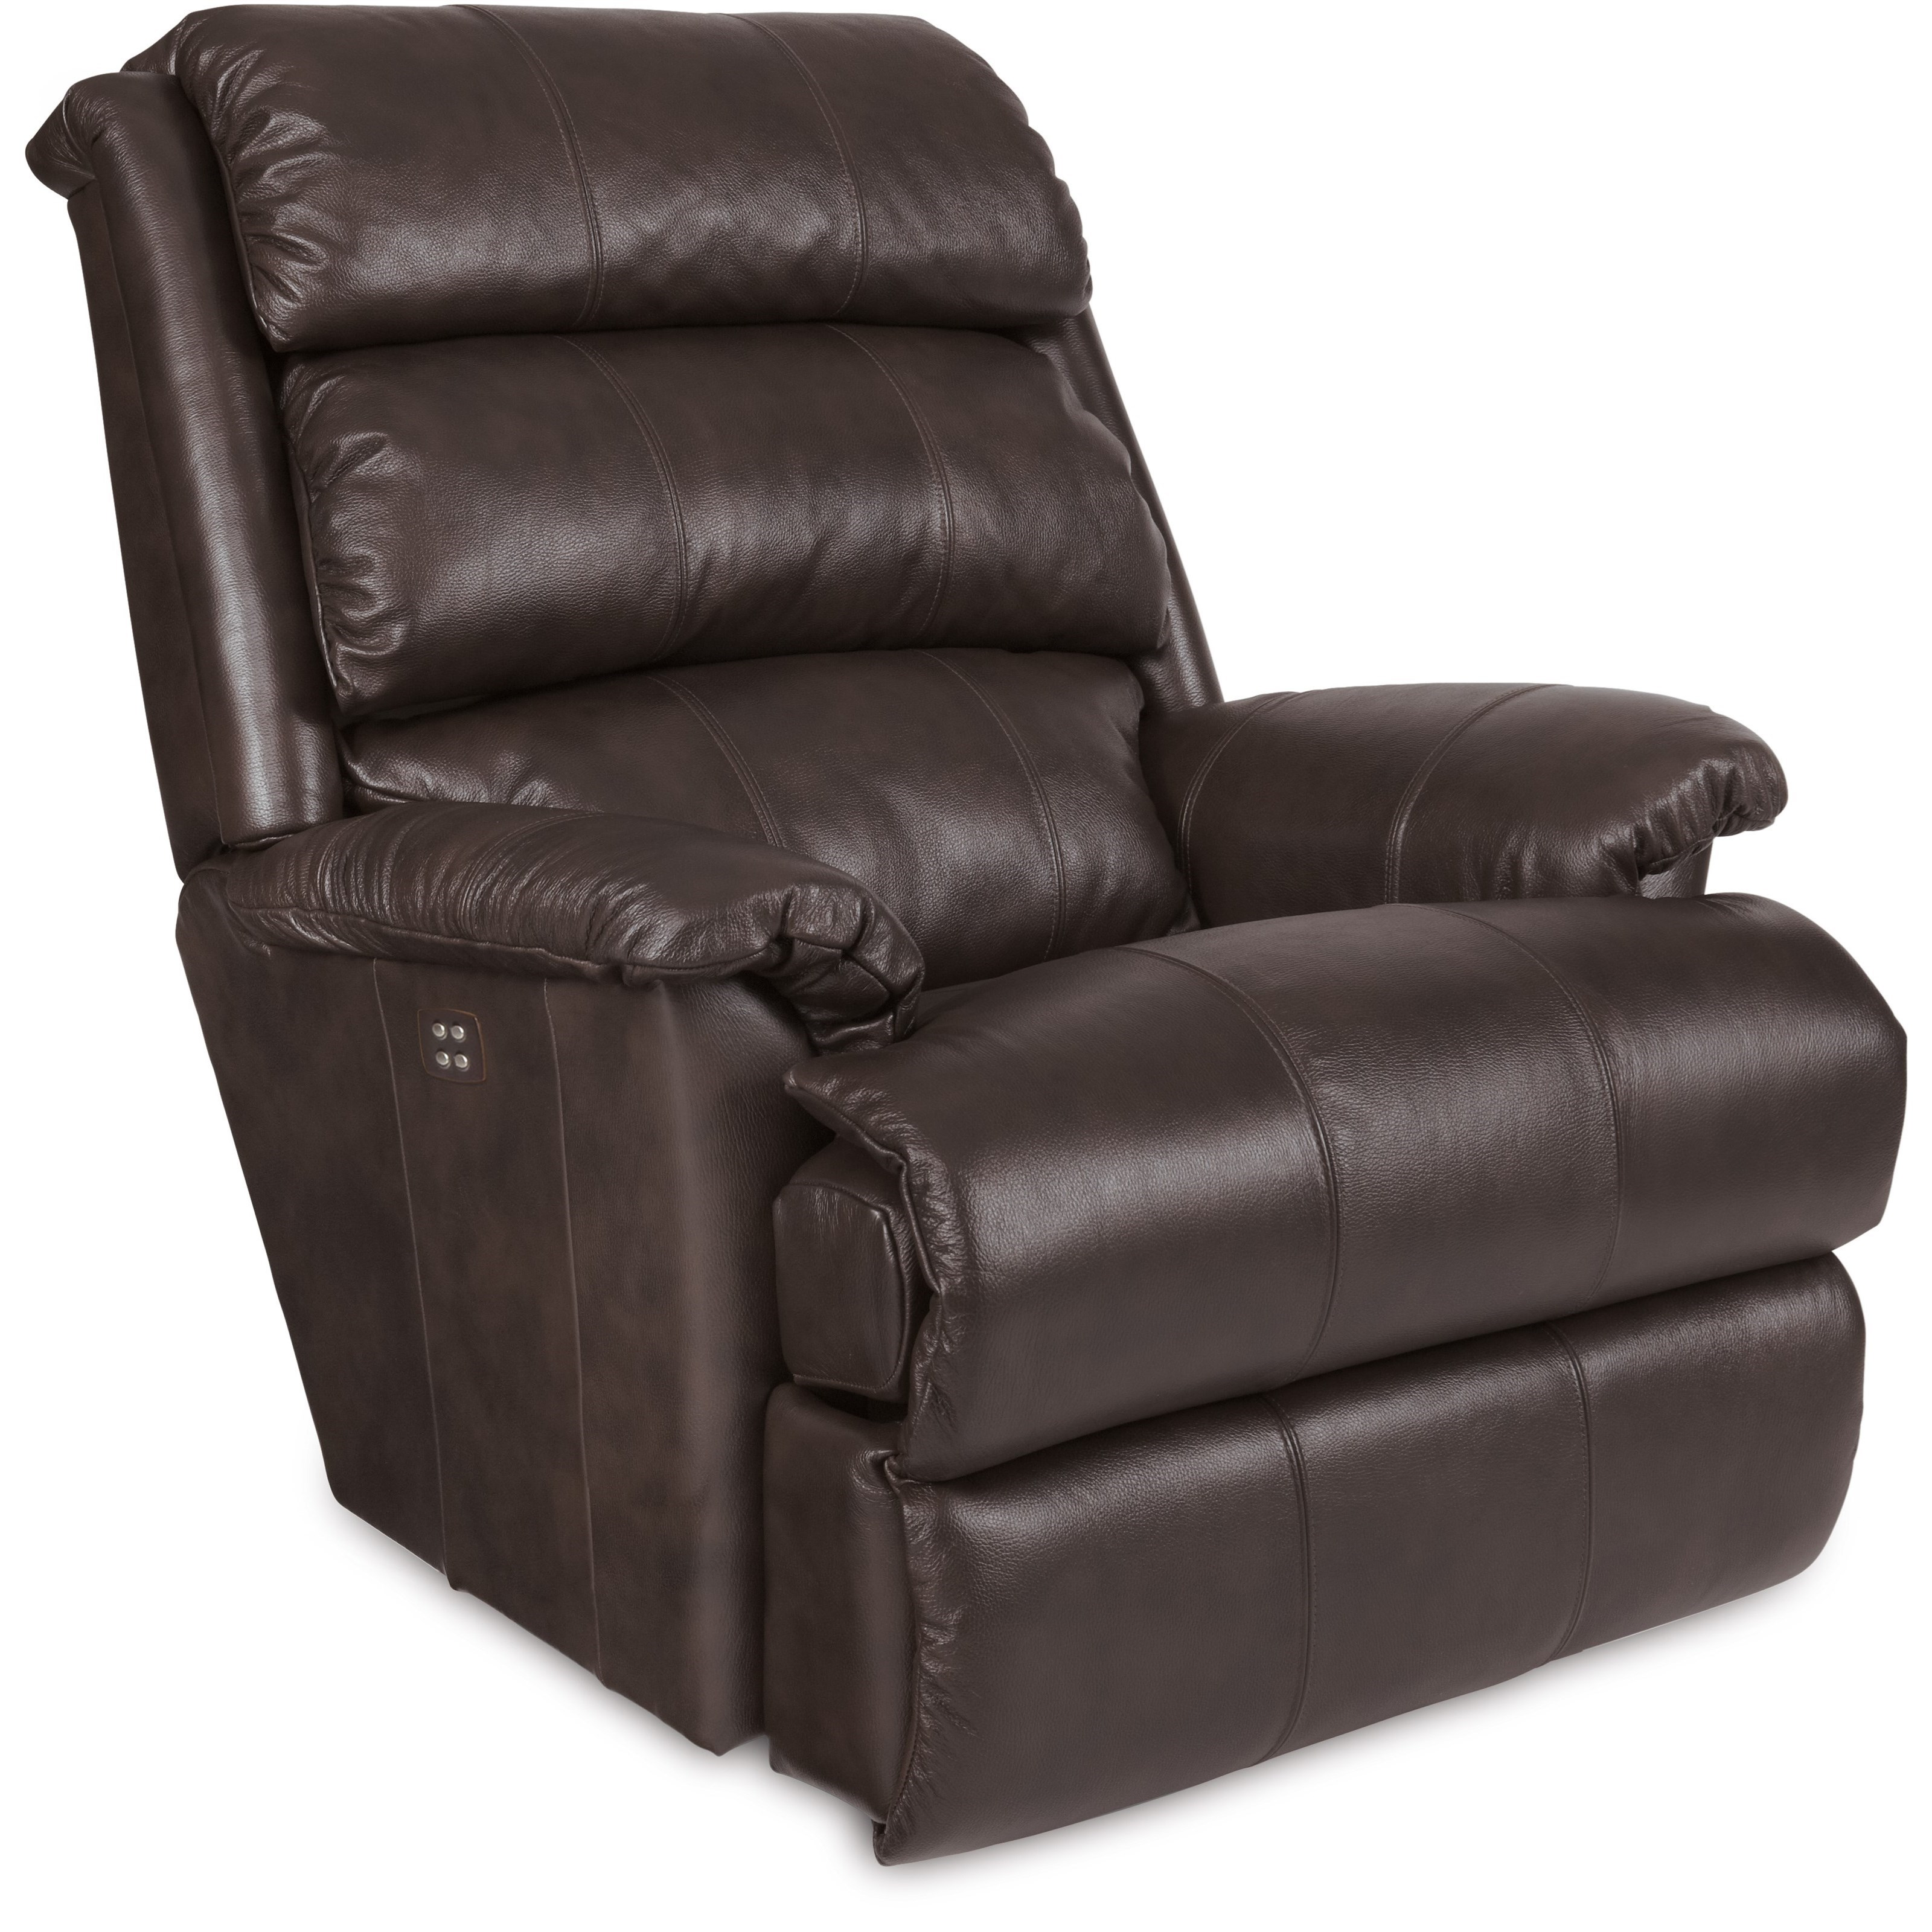 Astor Power-Recline-XRw™ RECLINA-WAY® Recliner by La-Z-Boy at Sparks HomeStore